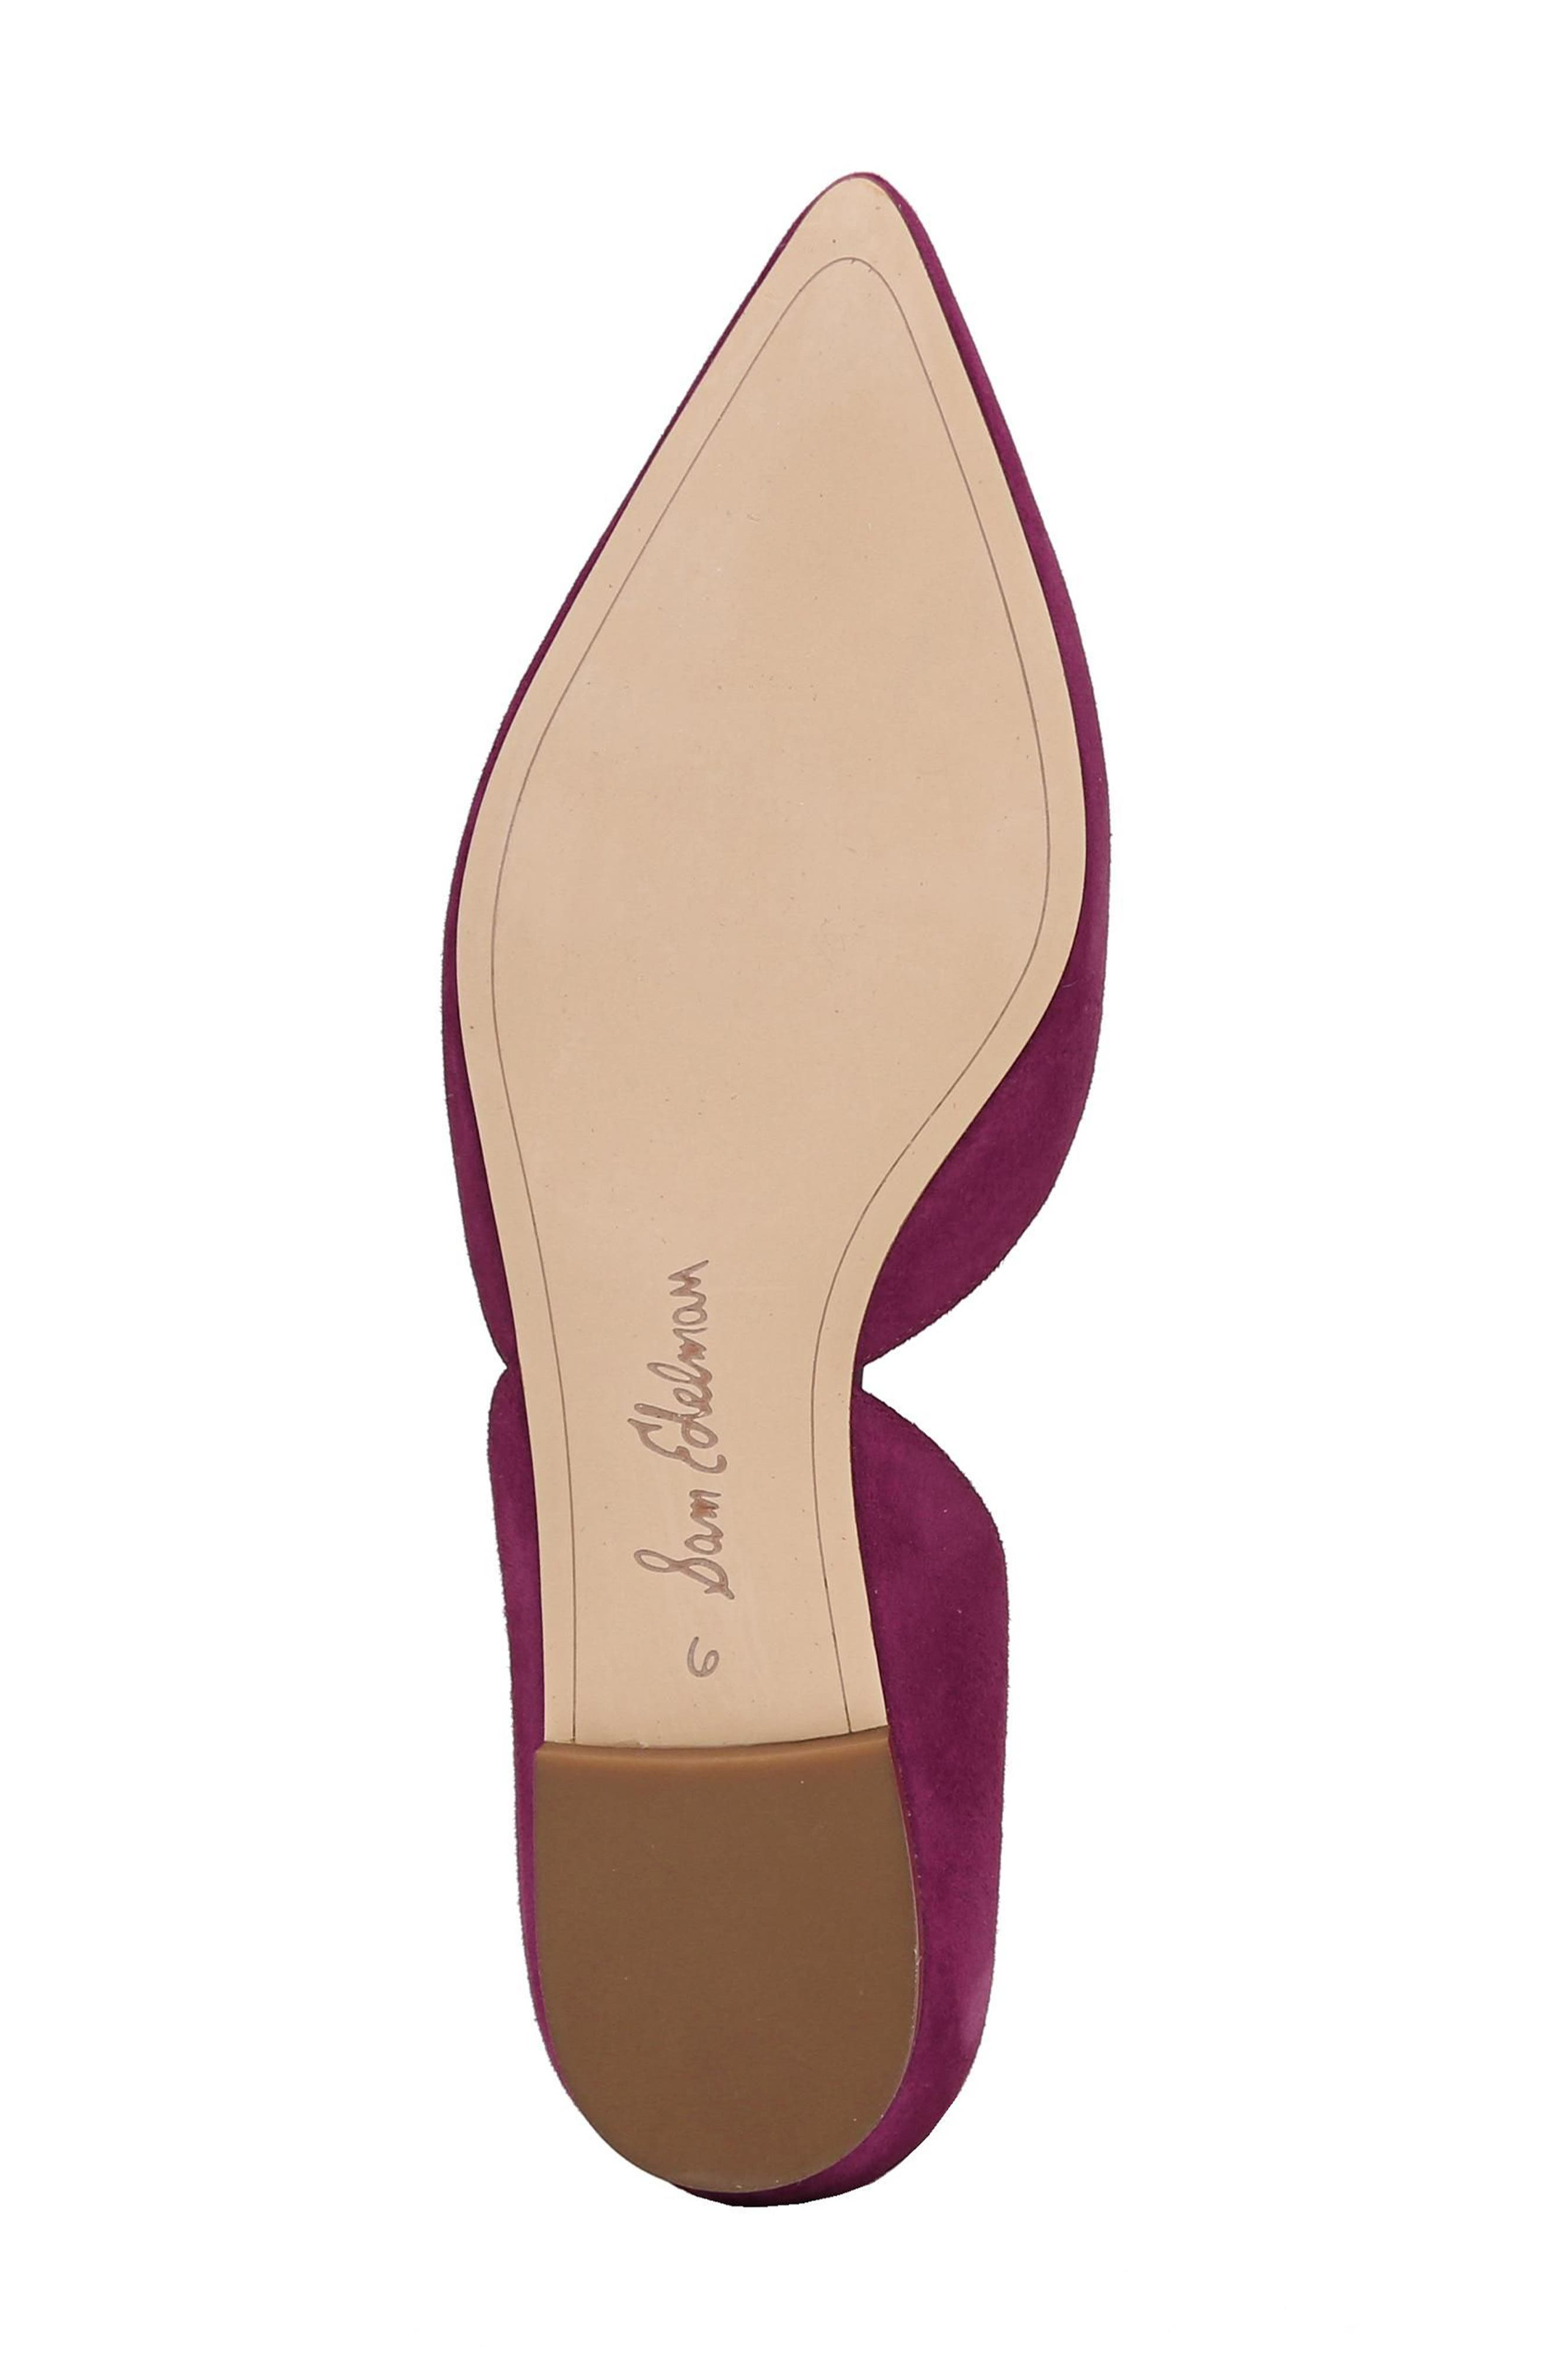 Rodney Pointy Toe d'Orsay Flat,                             Alternate thumbnail 6, color,                             Purple Plum Suede